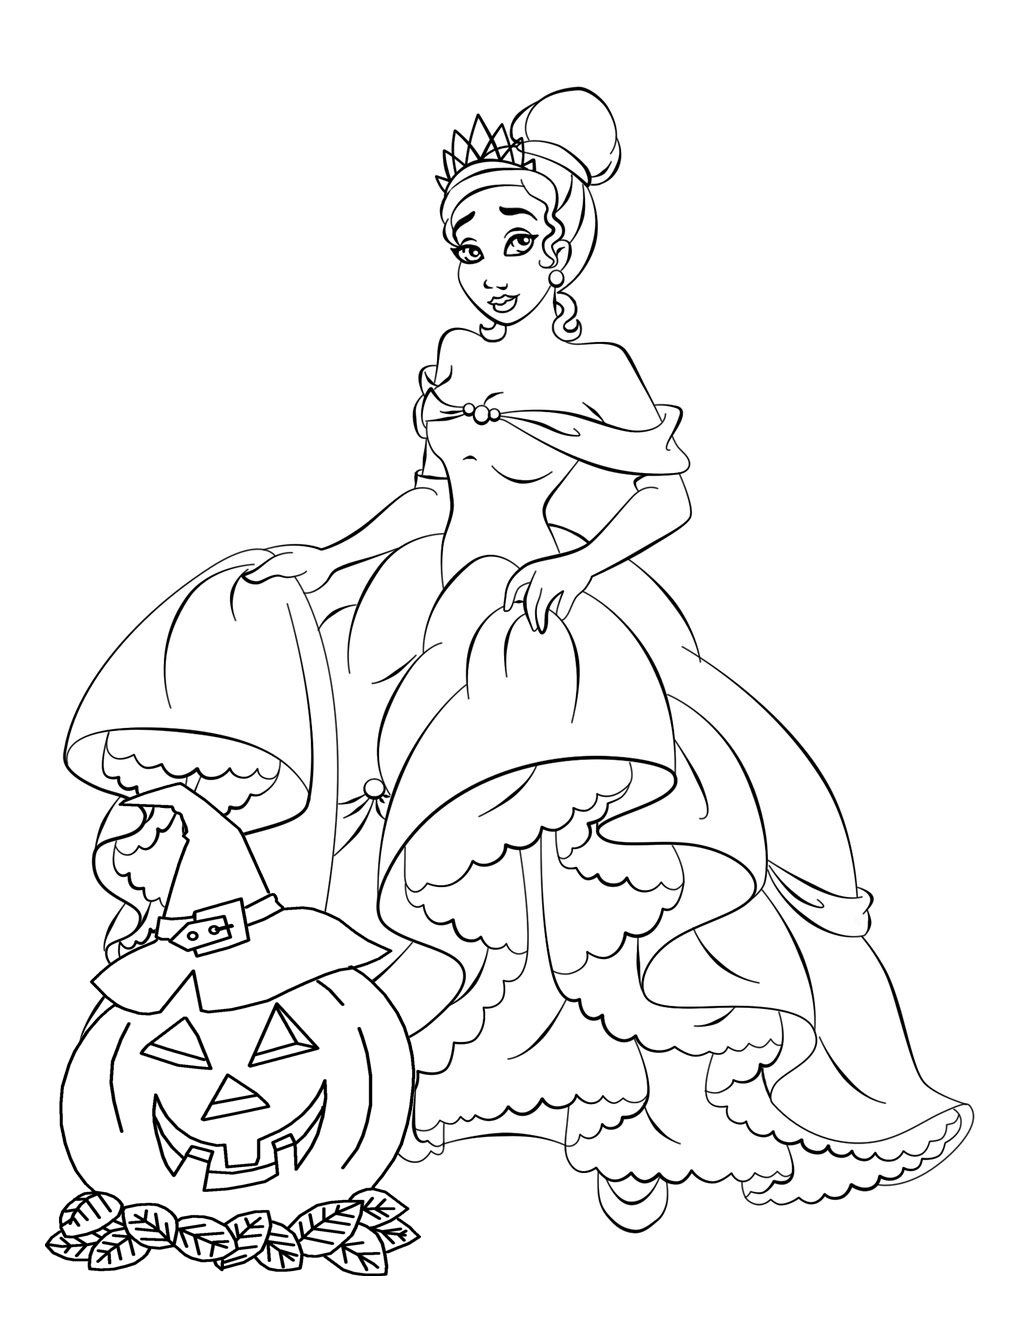 Colouring in sheets for halloween - Disney Princess Free Disney Halloween Coloring Pages